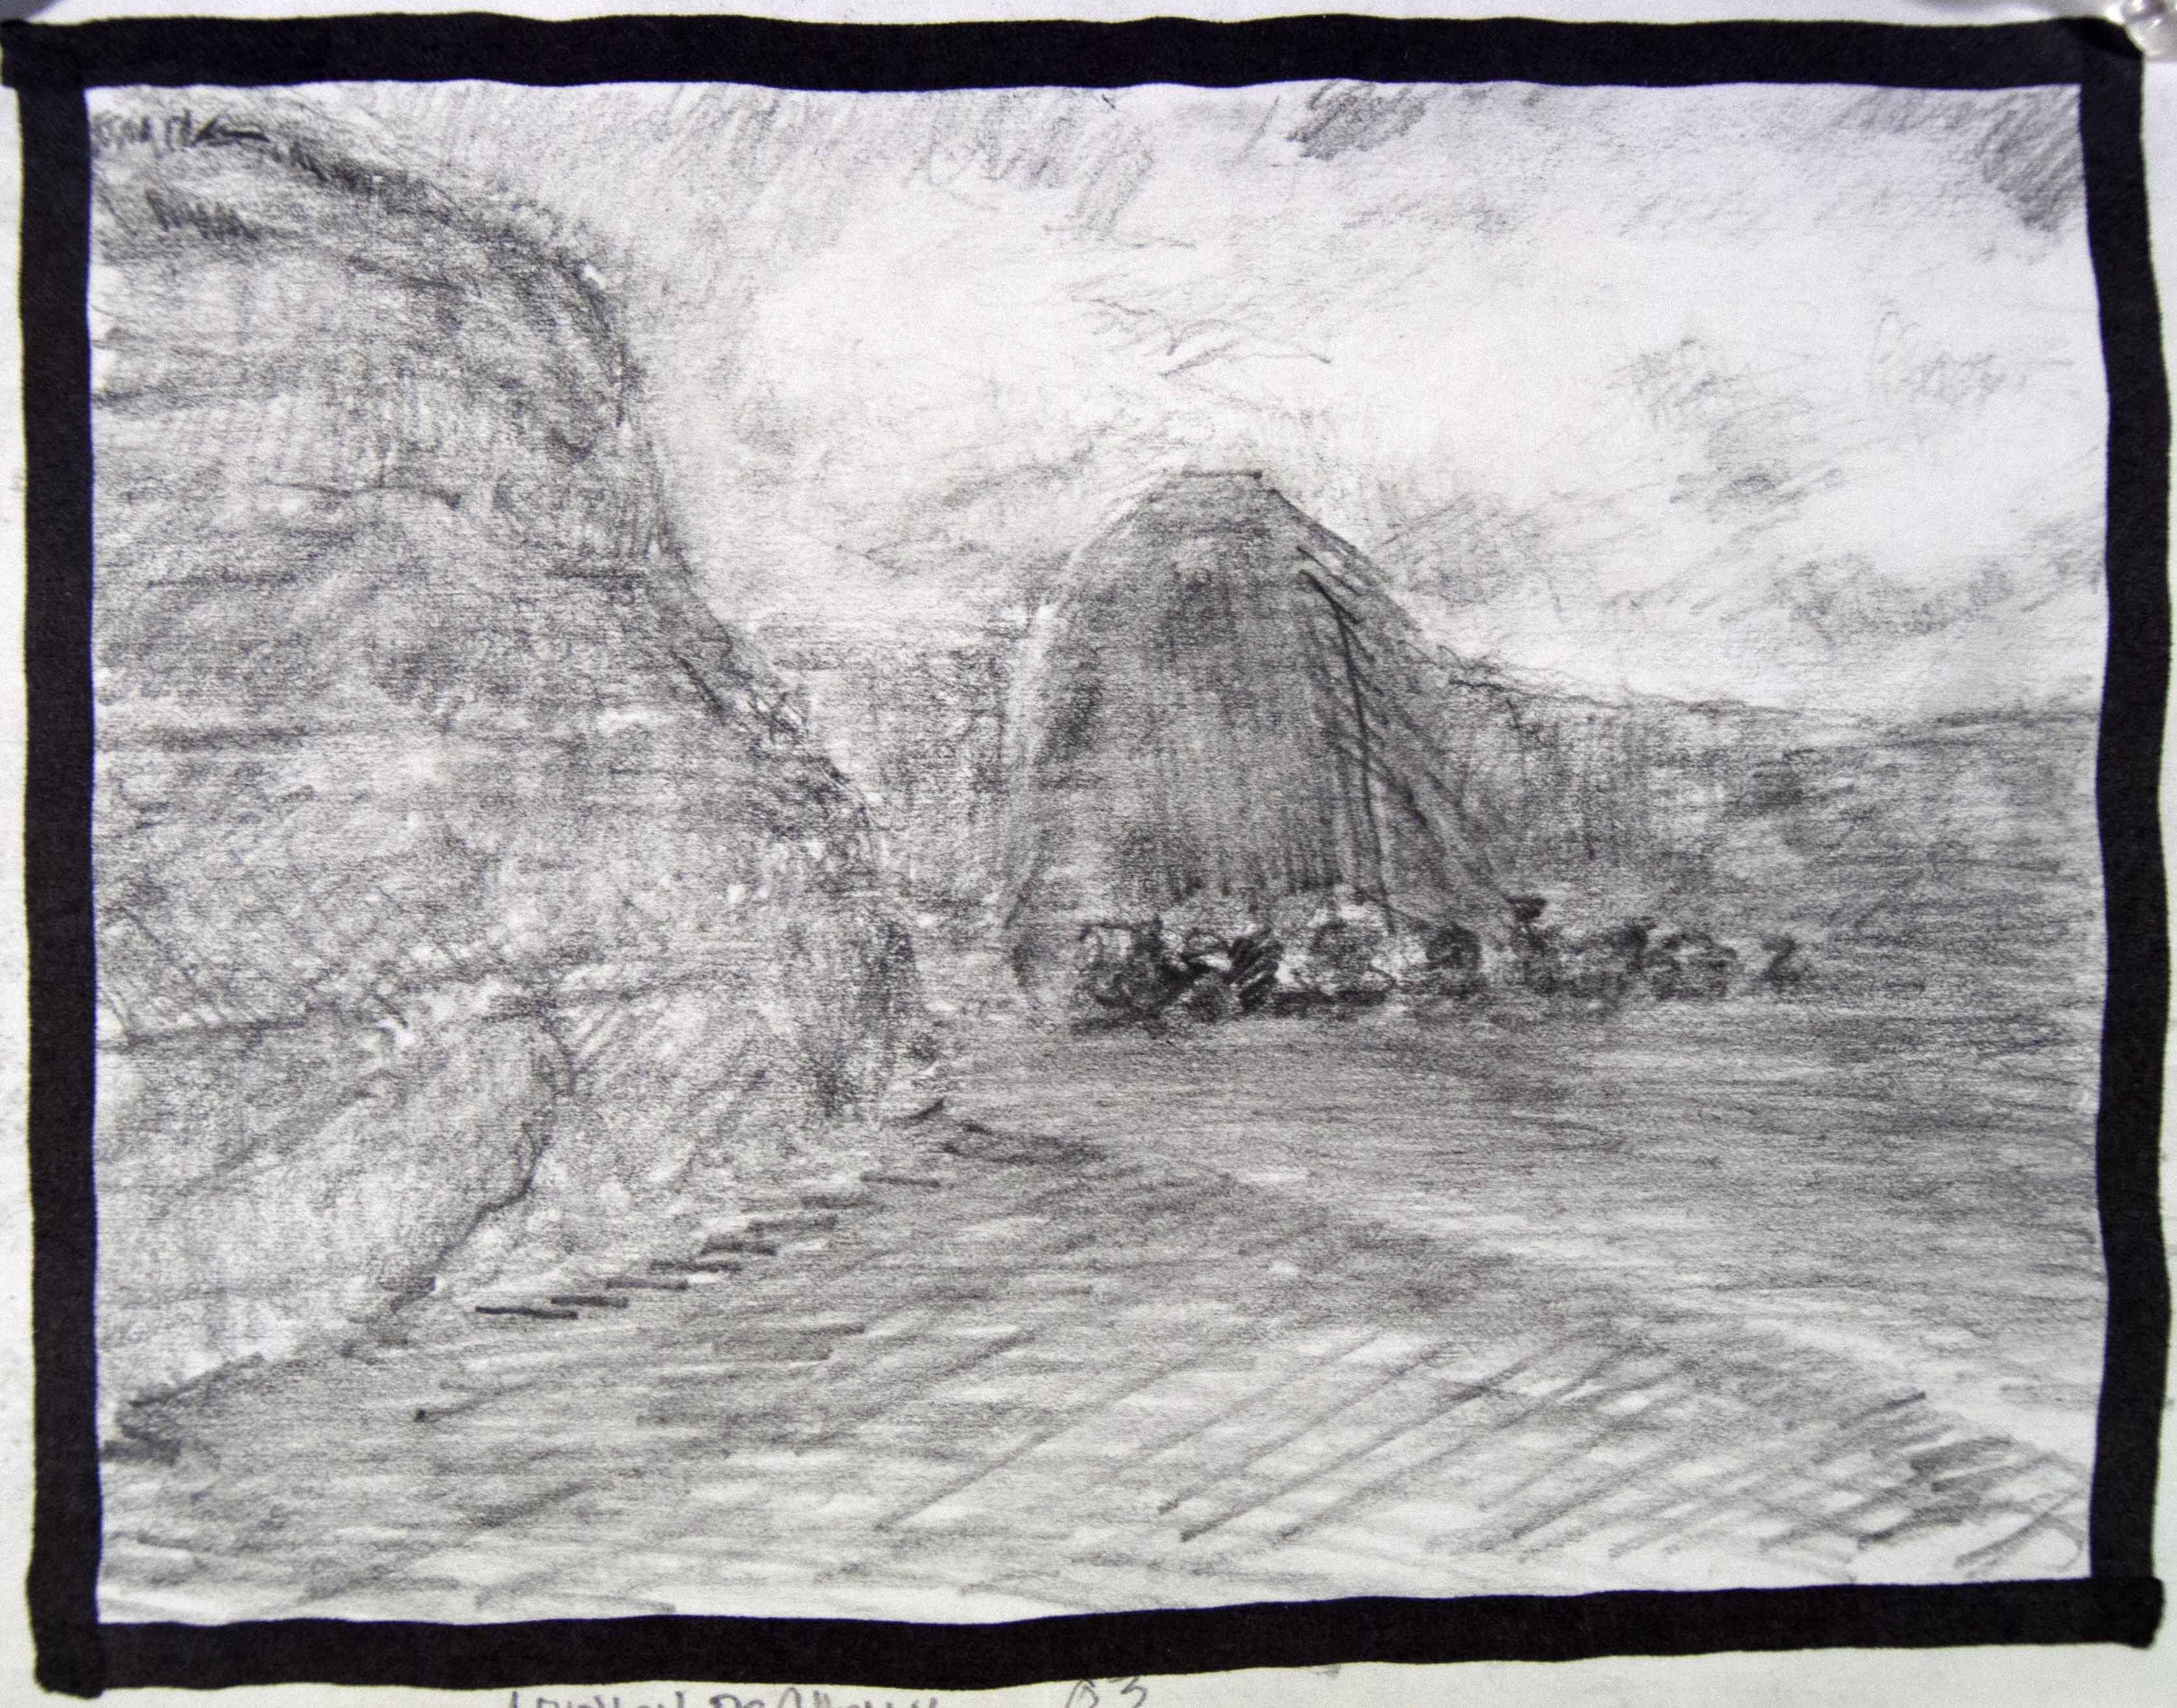 CanyonDeChelly03pencil_paper4